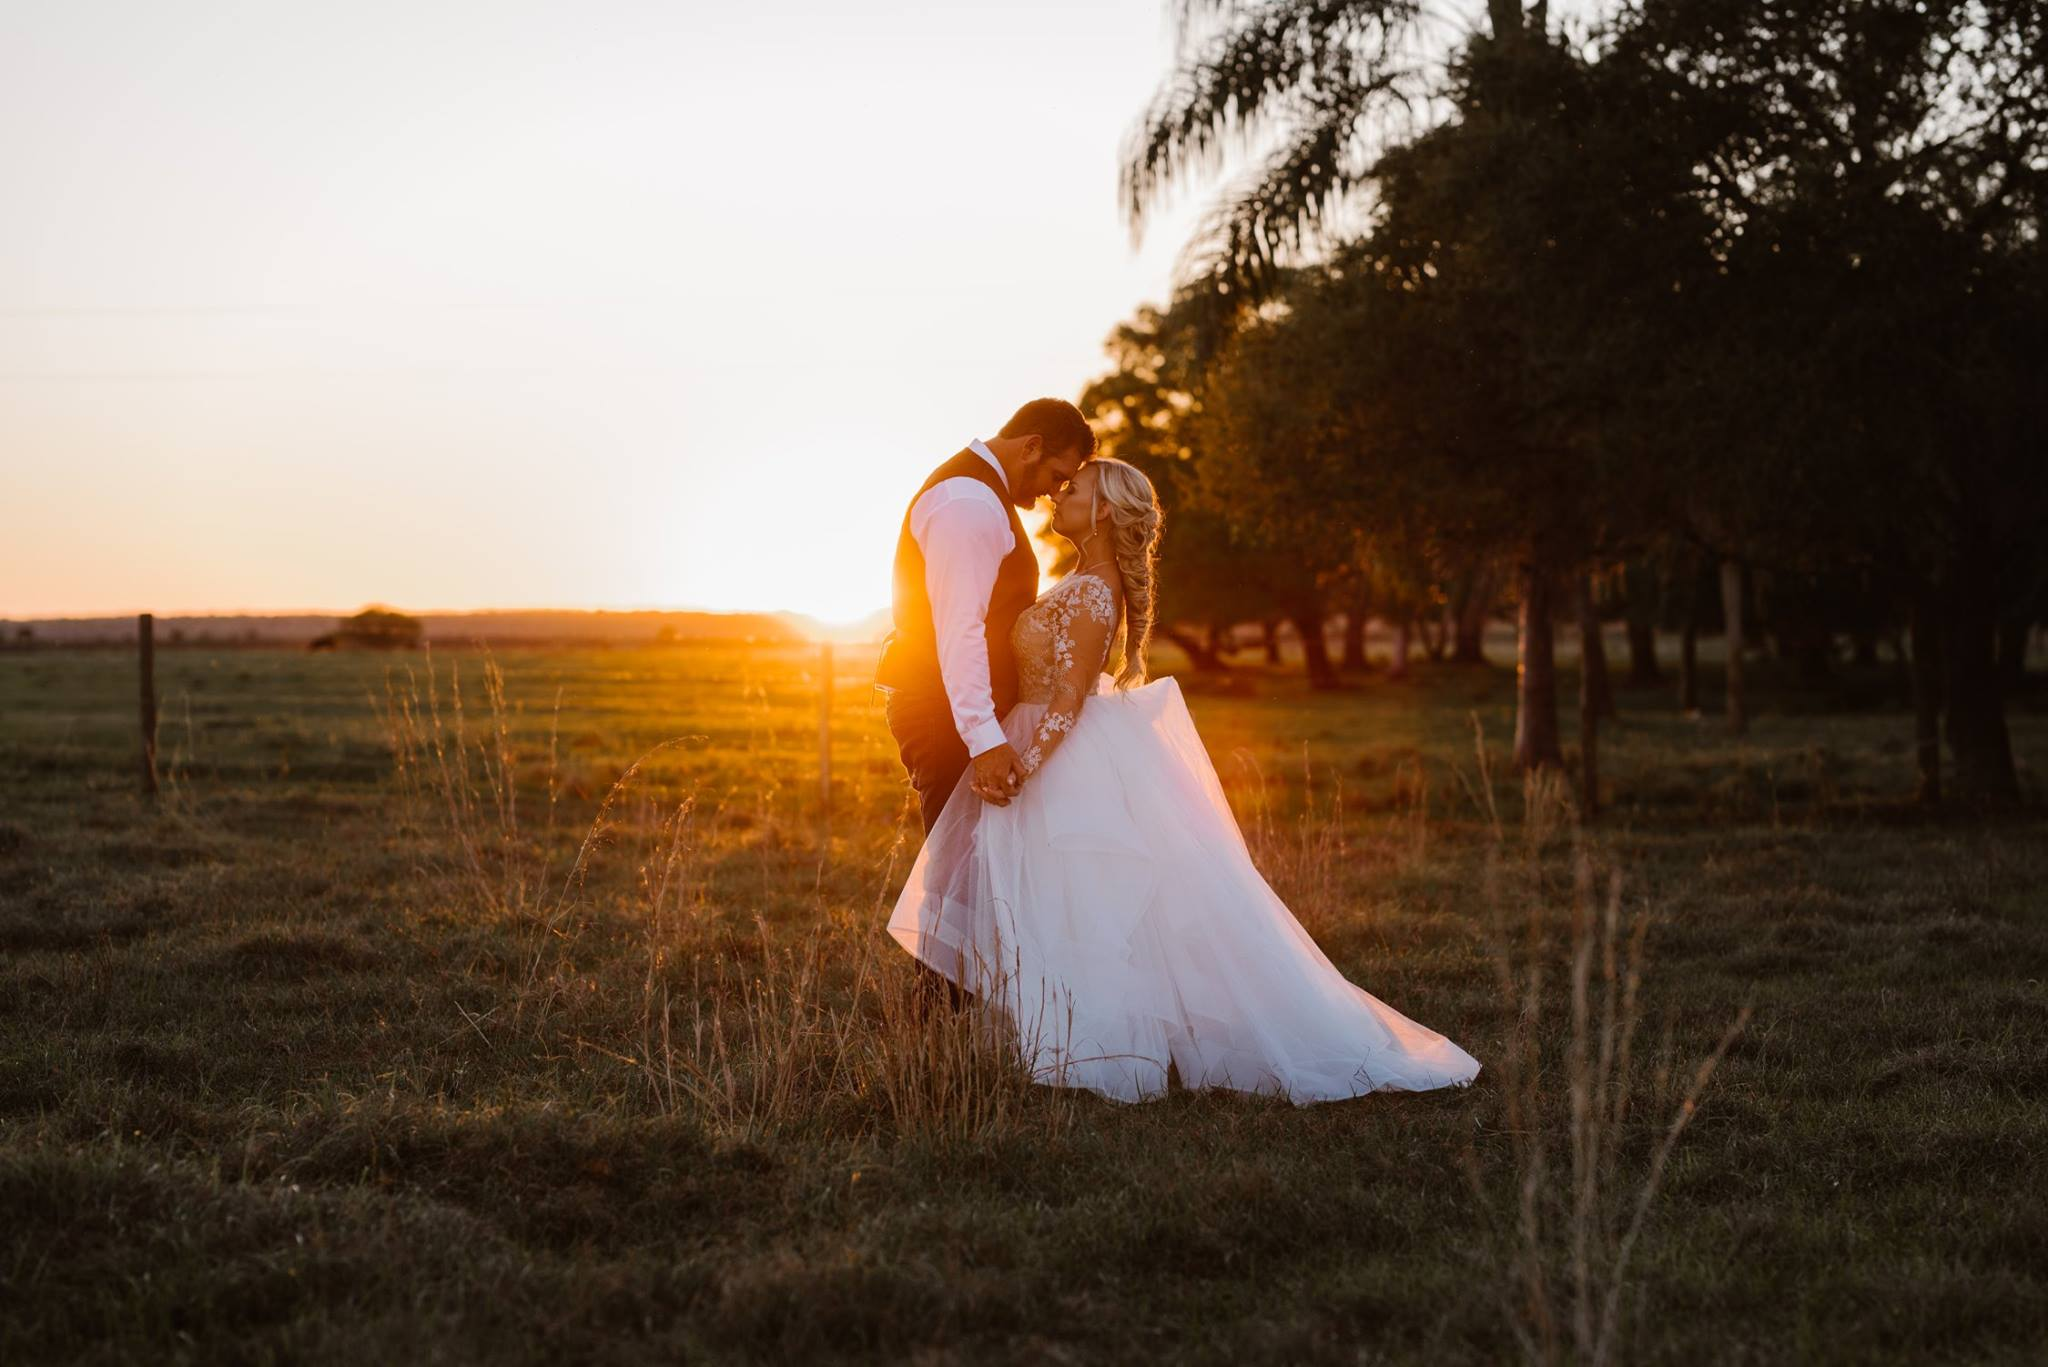 Newly married couple kissing in the field